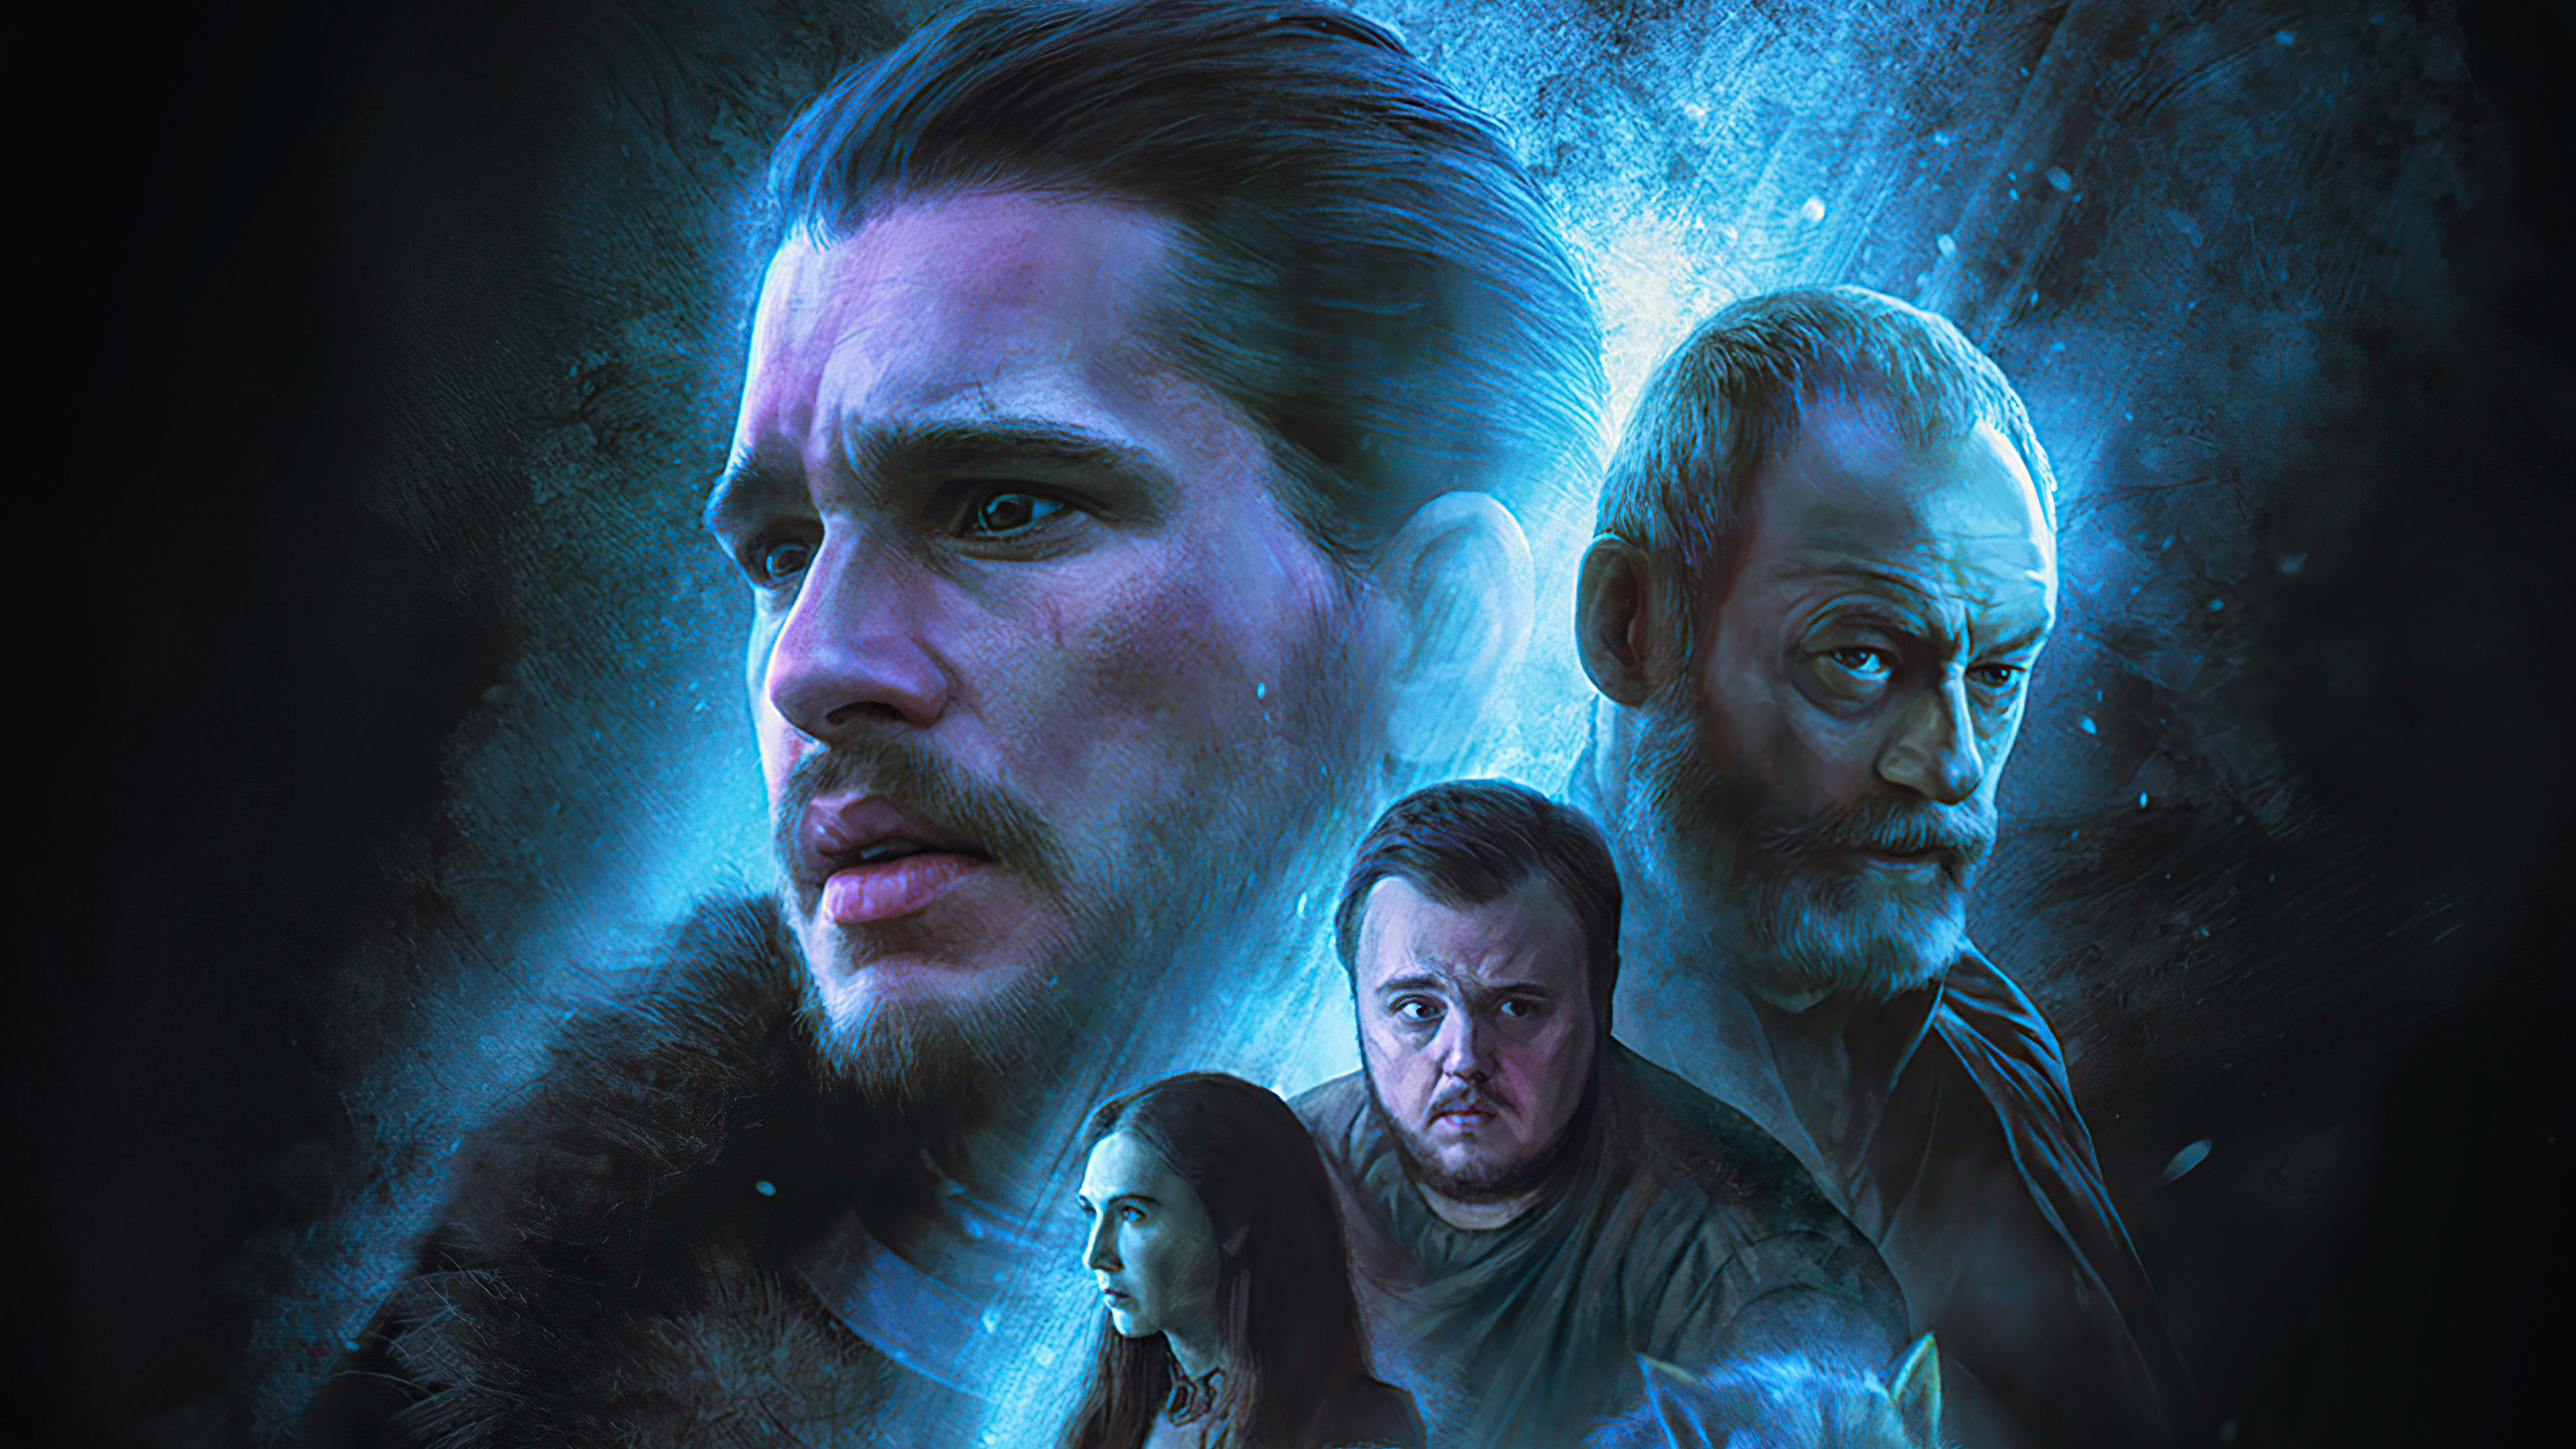 game of thrones fanposter 4k 1615205061 - Game Of Thrones Fanposter 4k - Game Of Thrones Fanposter 4k wallpapers